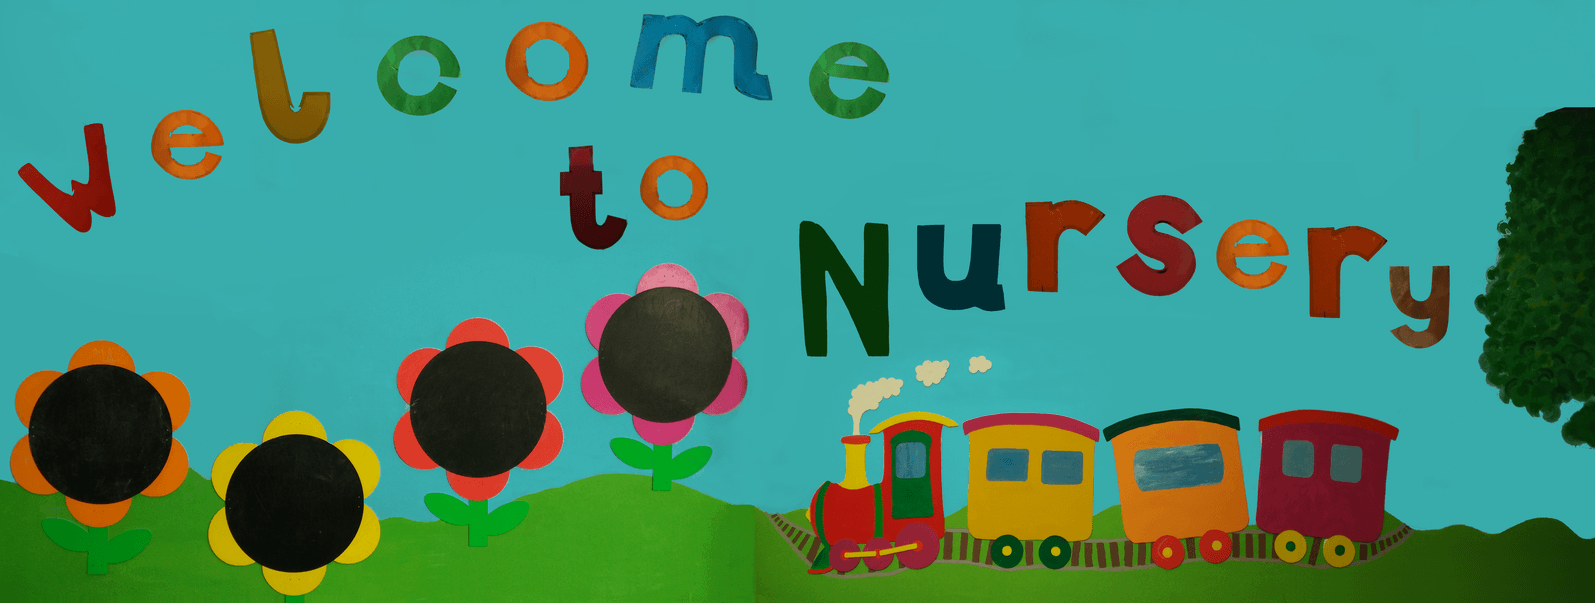 Nursery and Infant School